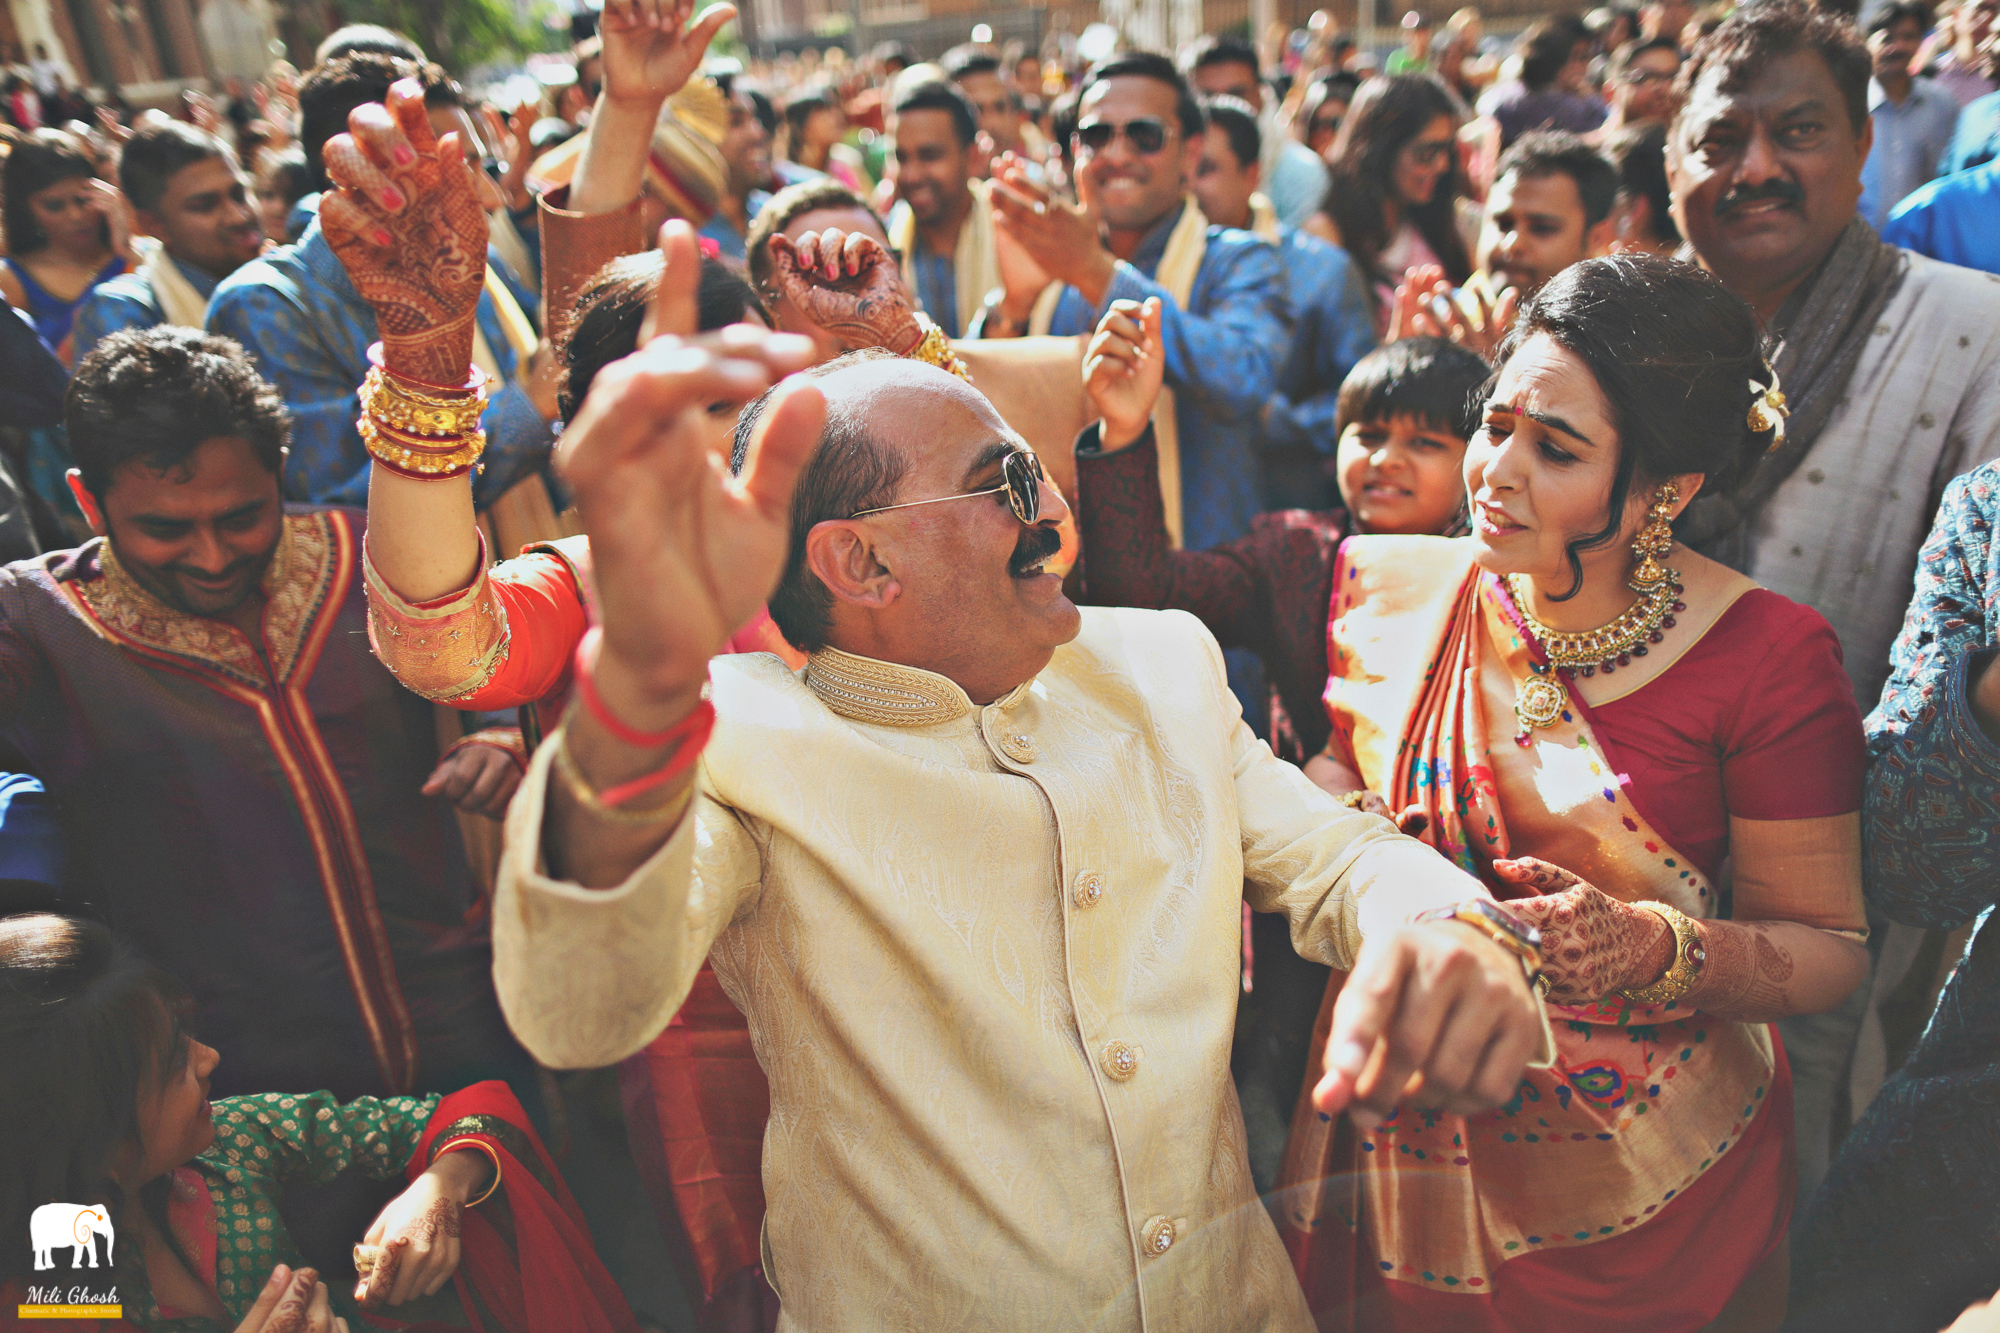 Copy of FAMILY CELEBRATING AT BARAAT